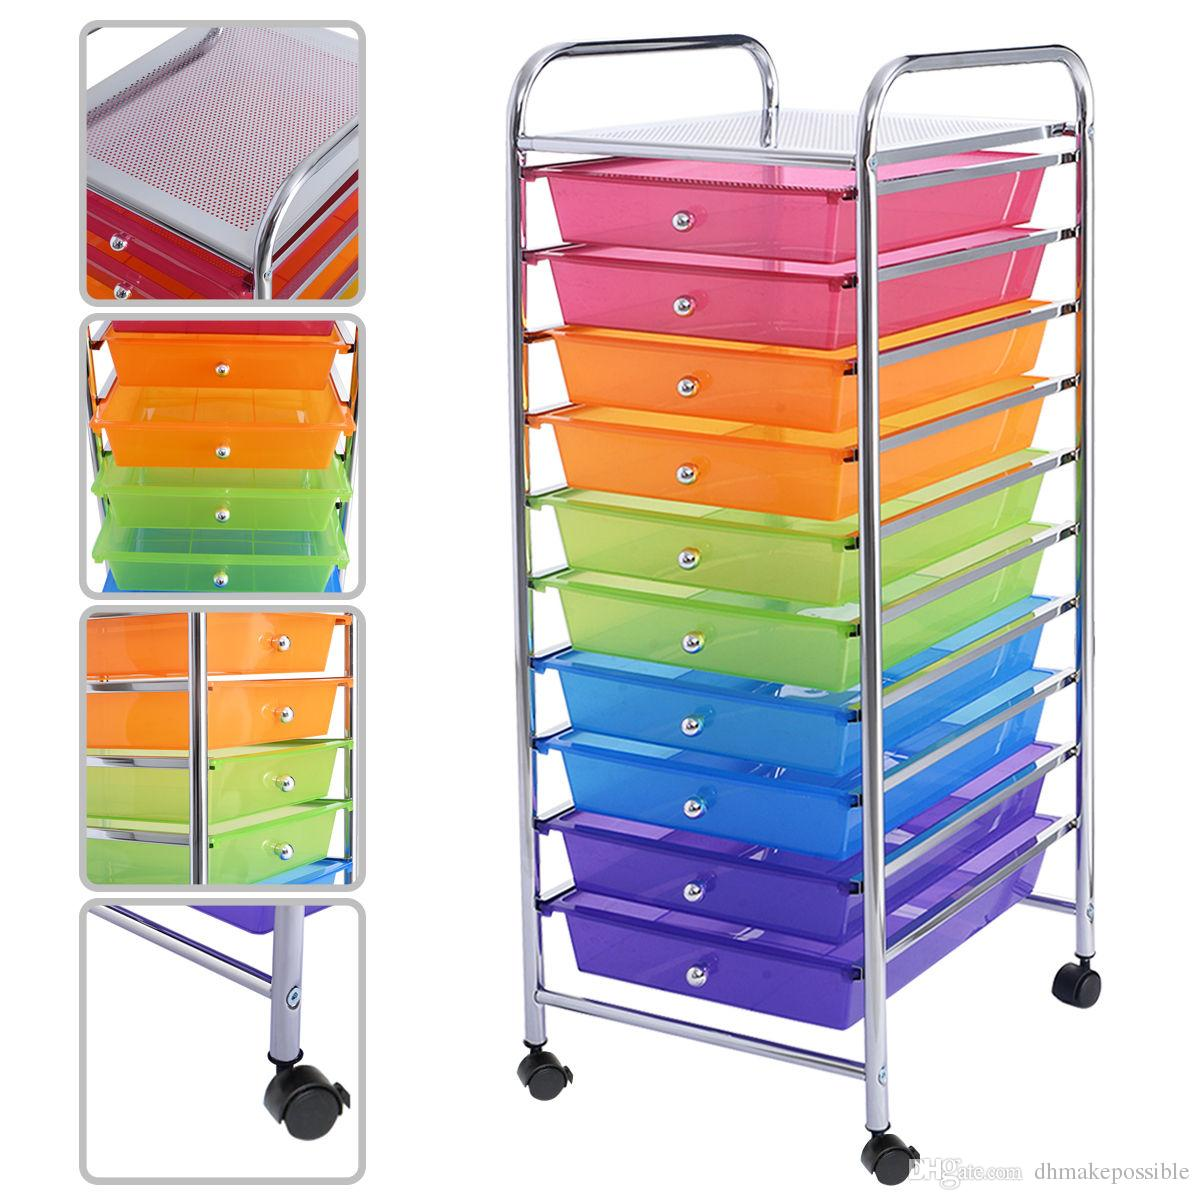 Incroyable 10 Drawer Rolling Storage Cart For Scrapbook Paper In Office School  Organizer Paper Storage Rolling Cart Online With $34.26/Piece On  Dhmakepossibleu0027s Store ...